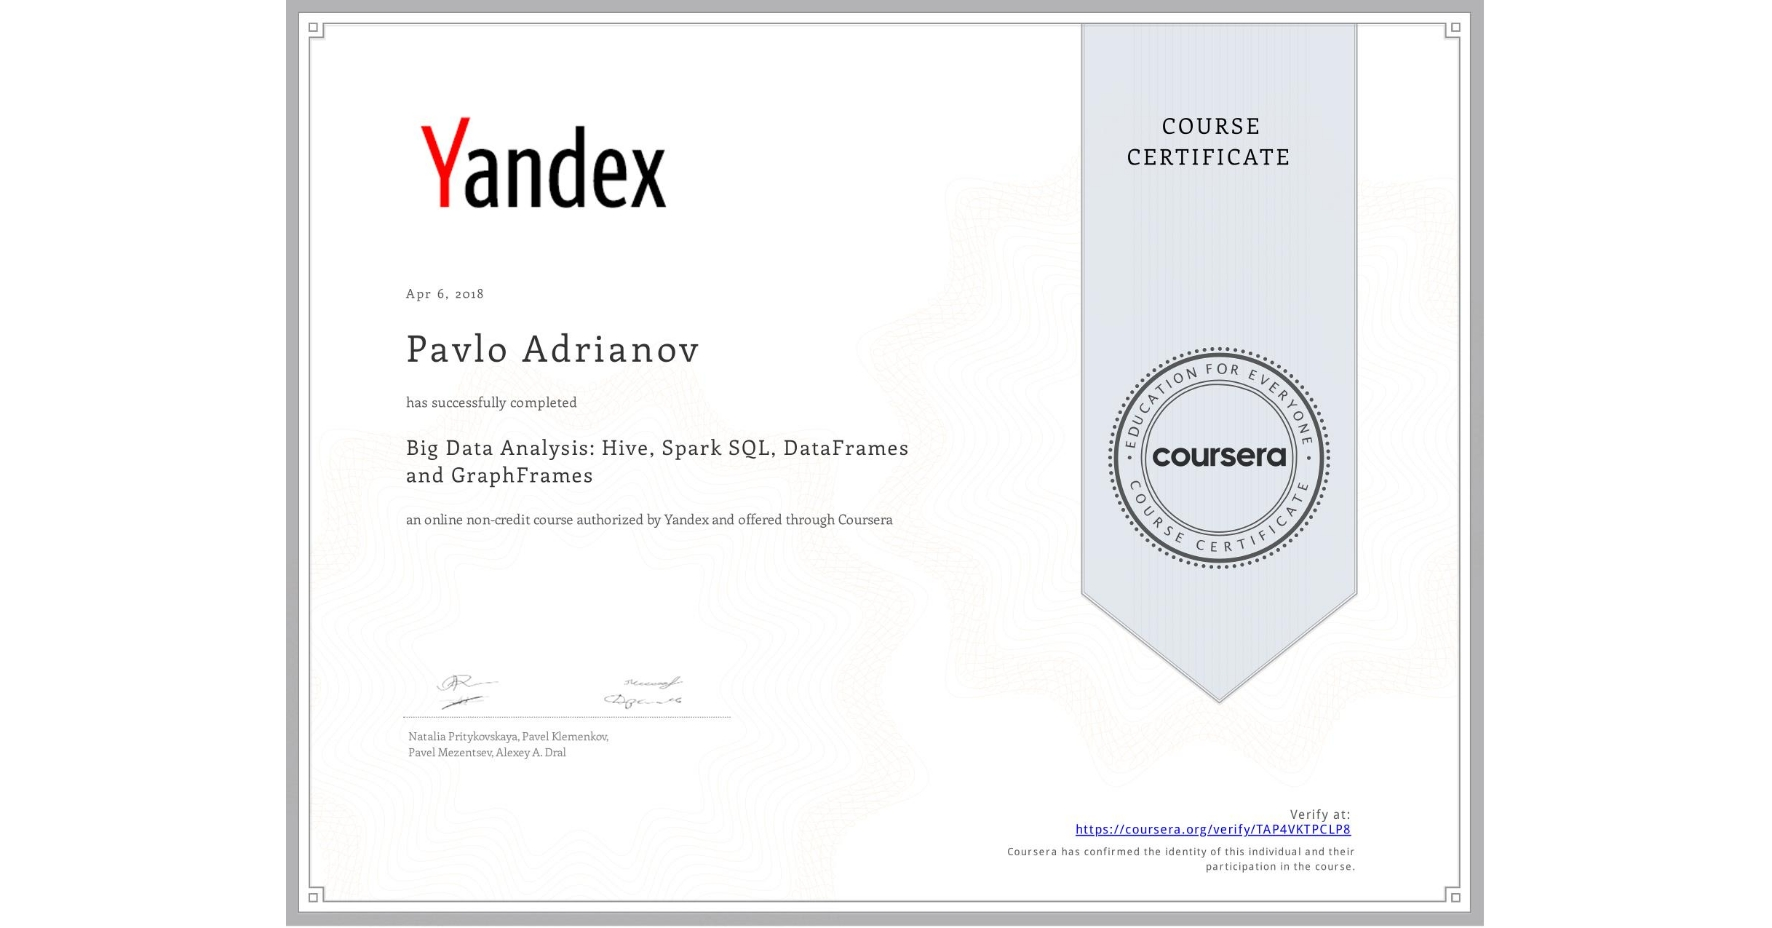 View certificate for Pavlo Adrianov, Big Data Analysis: Hive, Spark SQL, DataFrames and GraphFrames, an online non-credit course authorized by Yandex and offered through Coursera